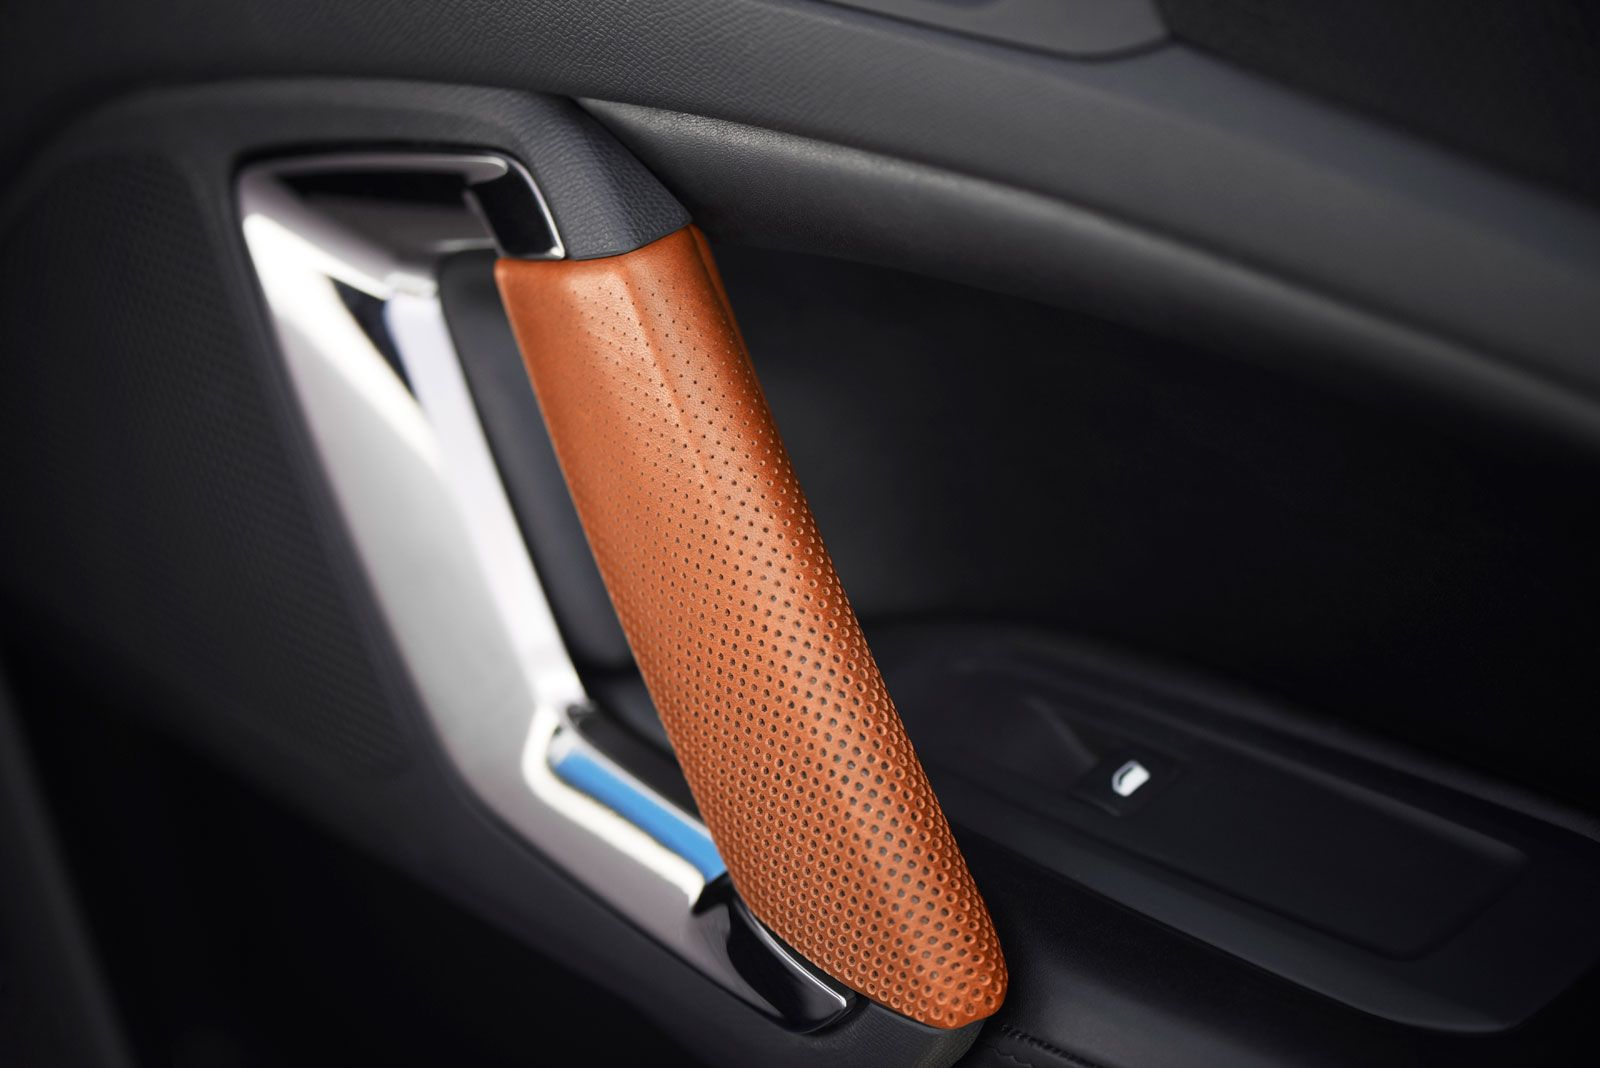 Peugeot 308 R Hybrid Concept Interior Door Panel Detail